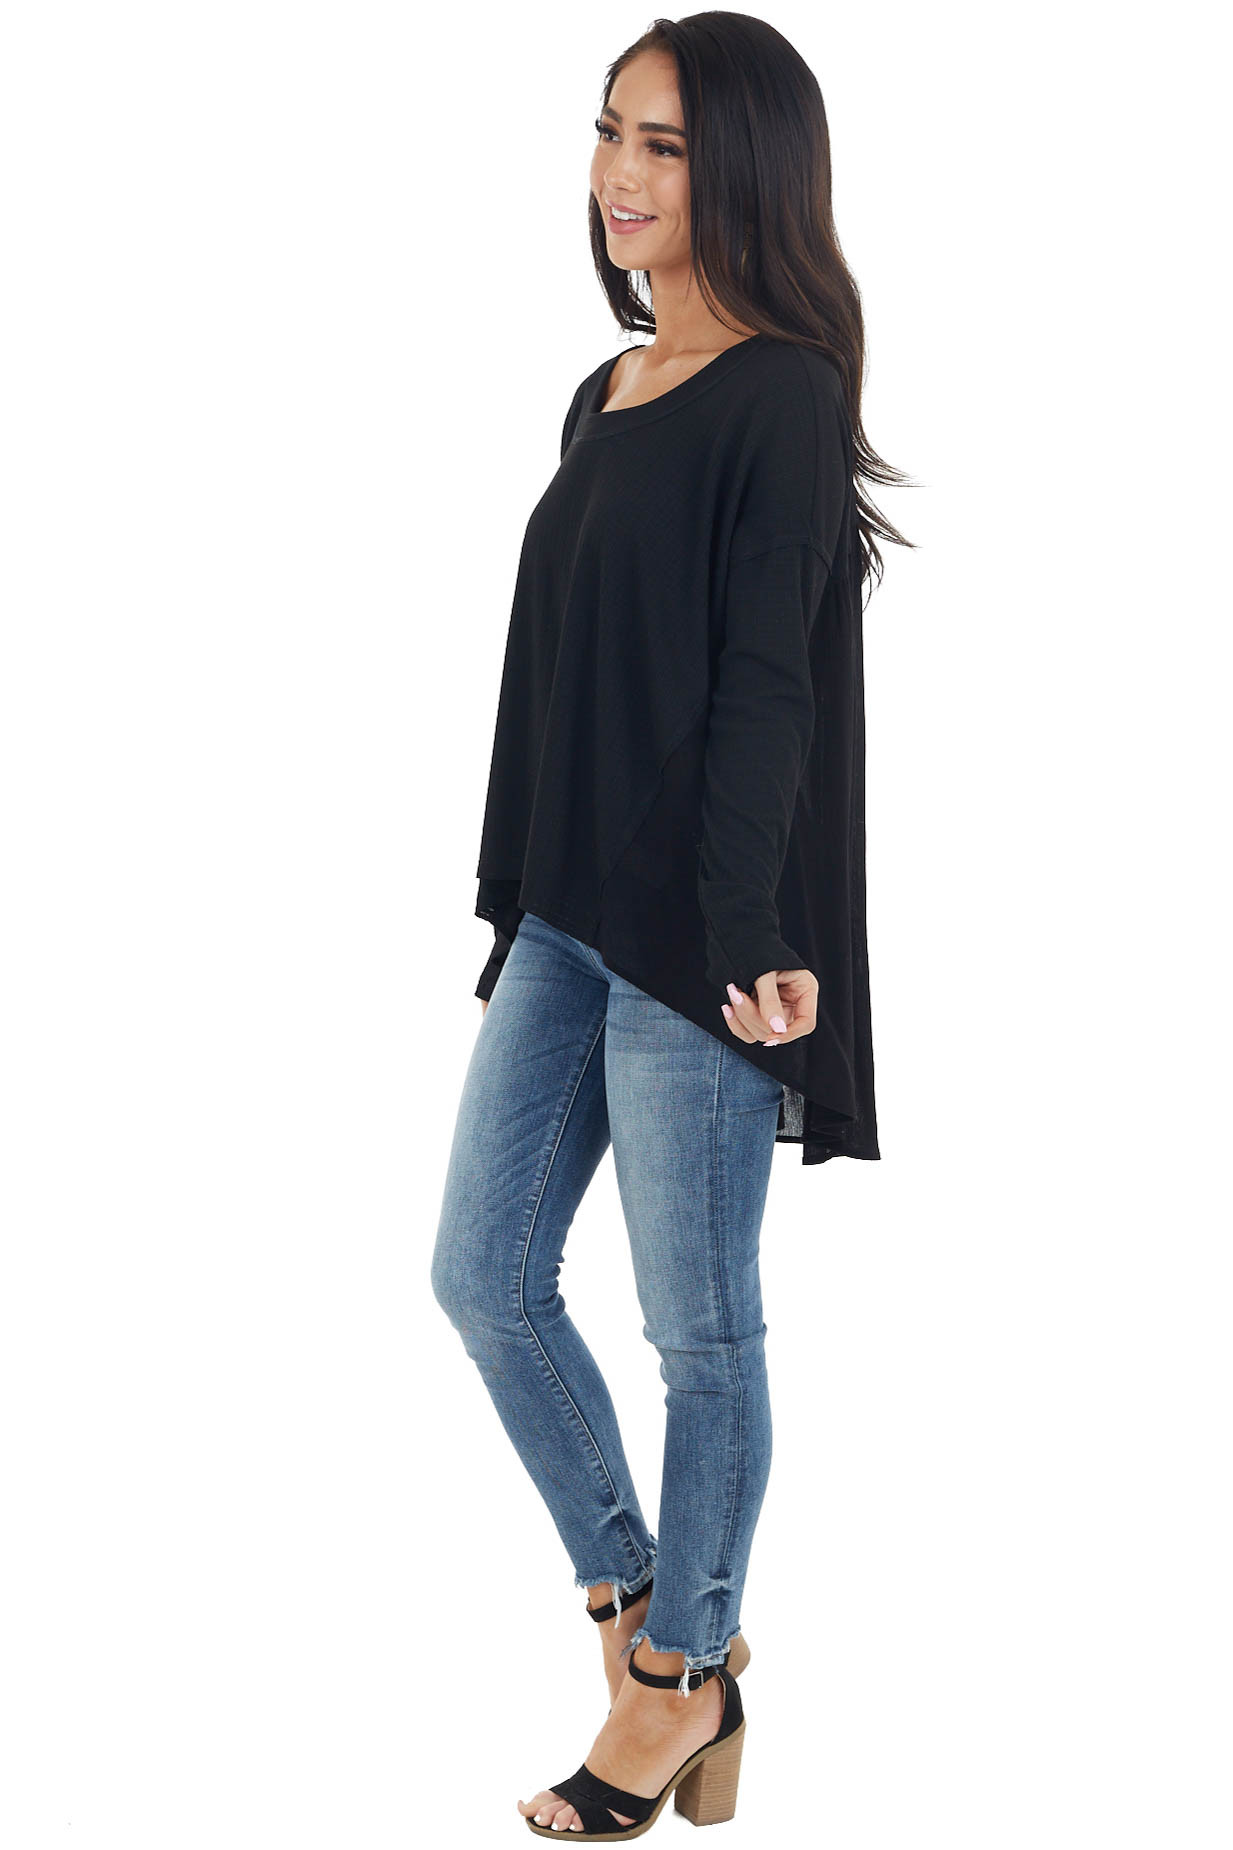 Black Long Sleeve High Low Knit Top with Woven Contrast